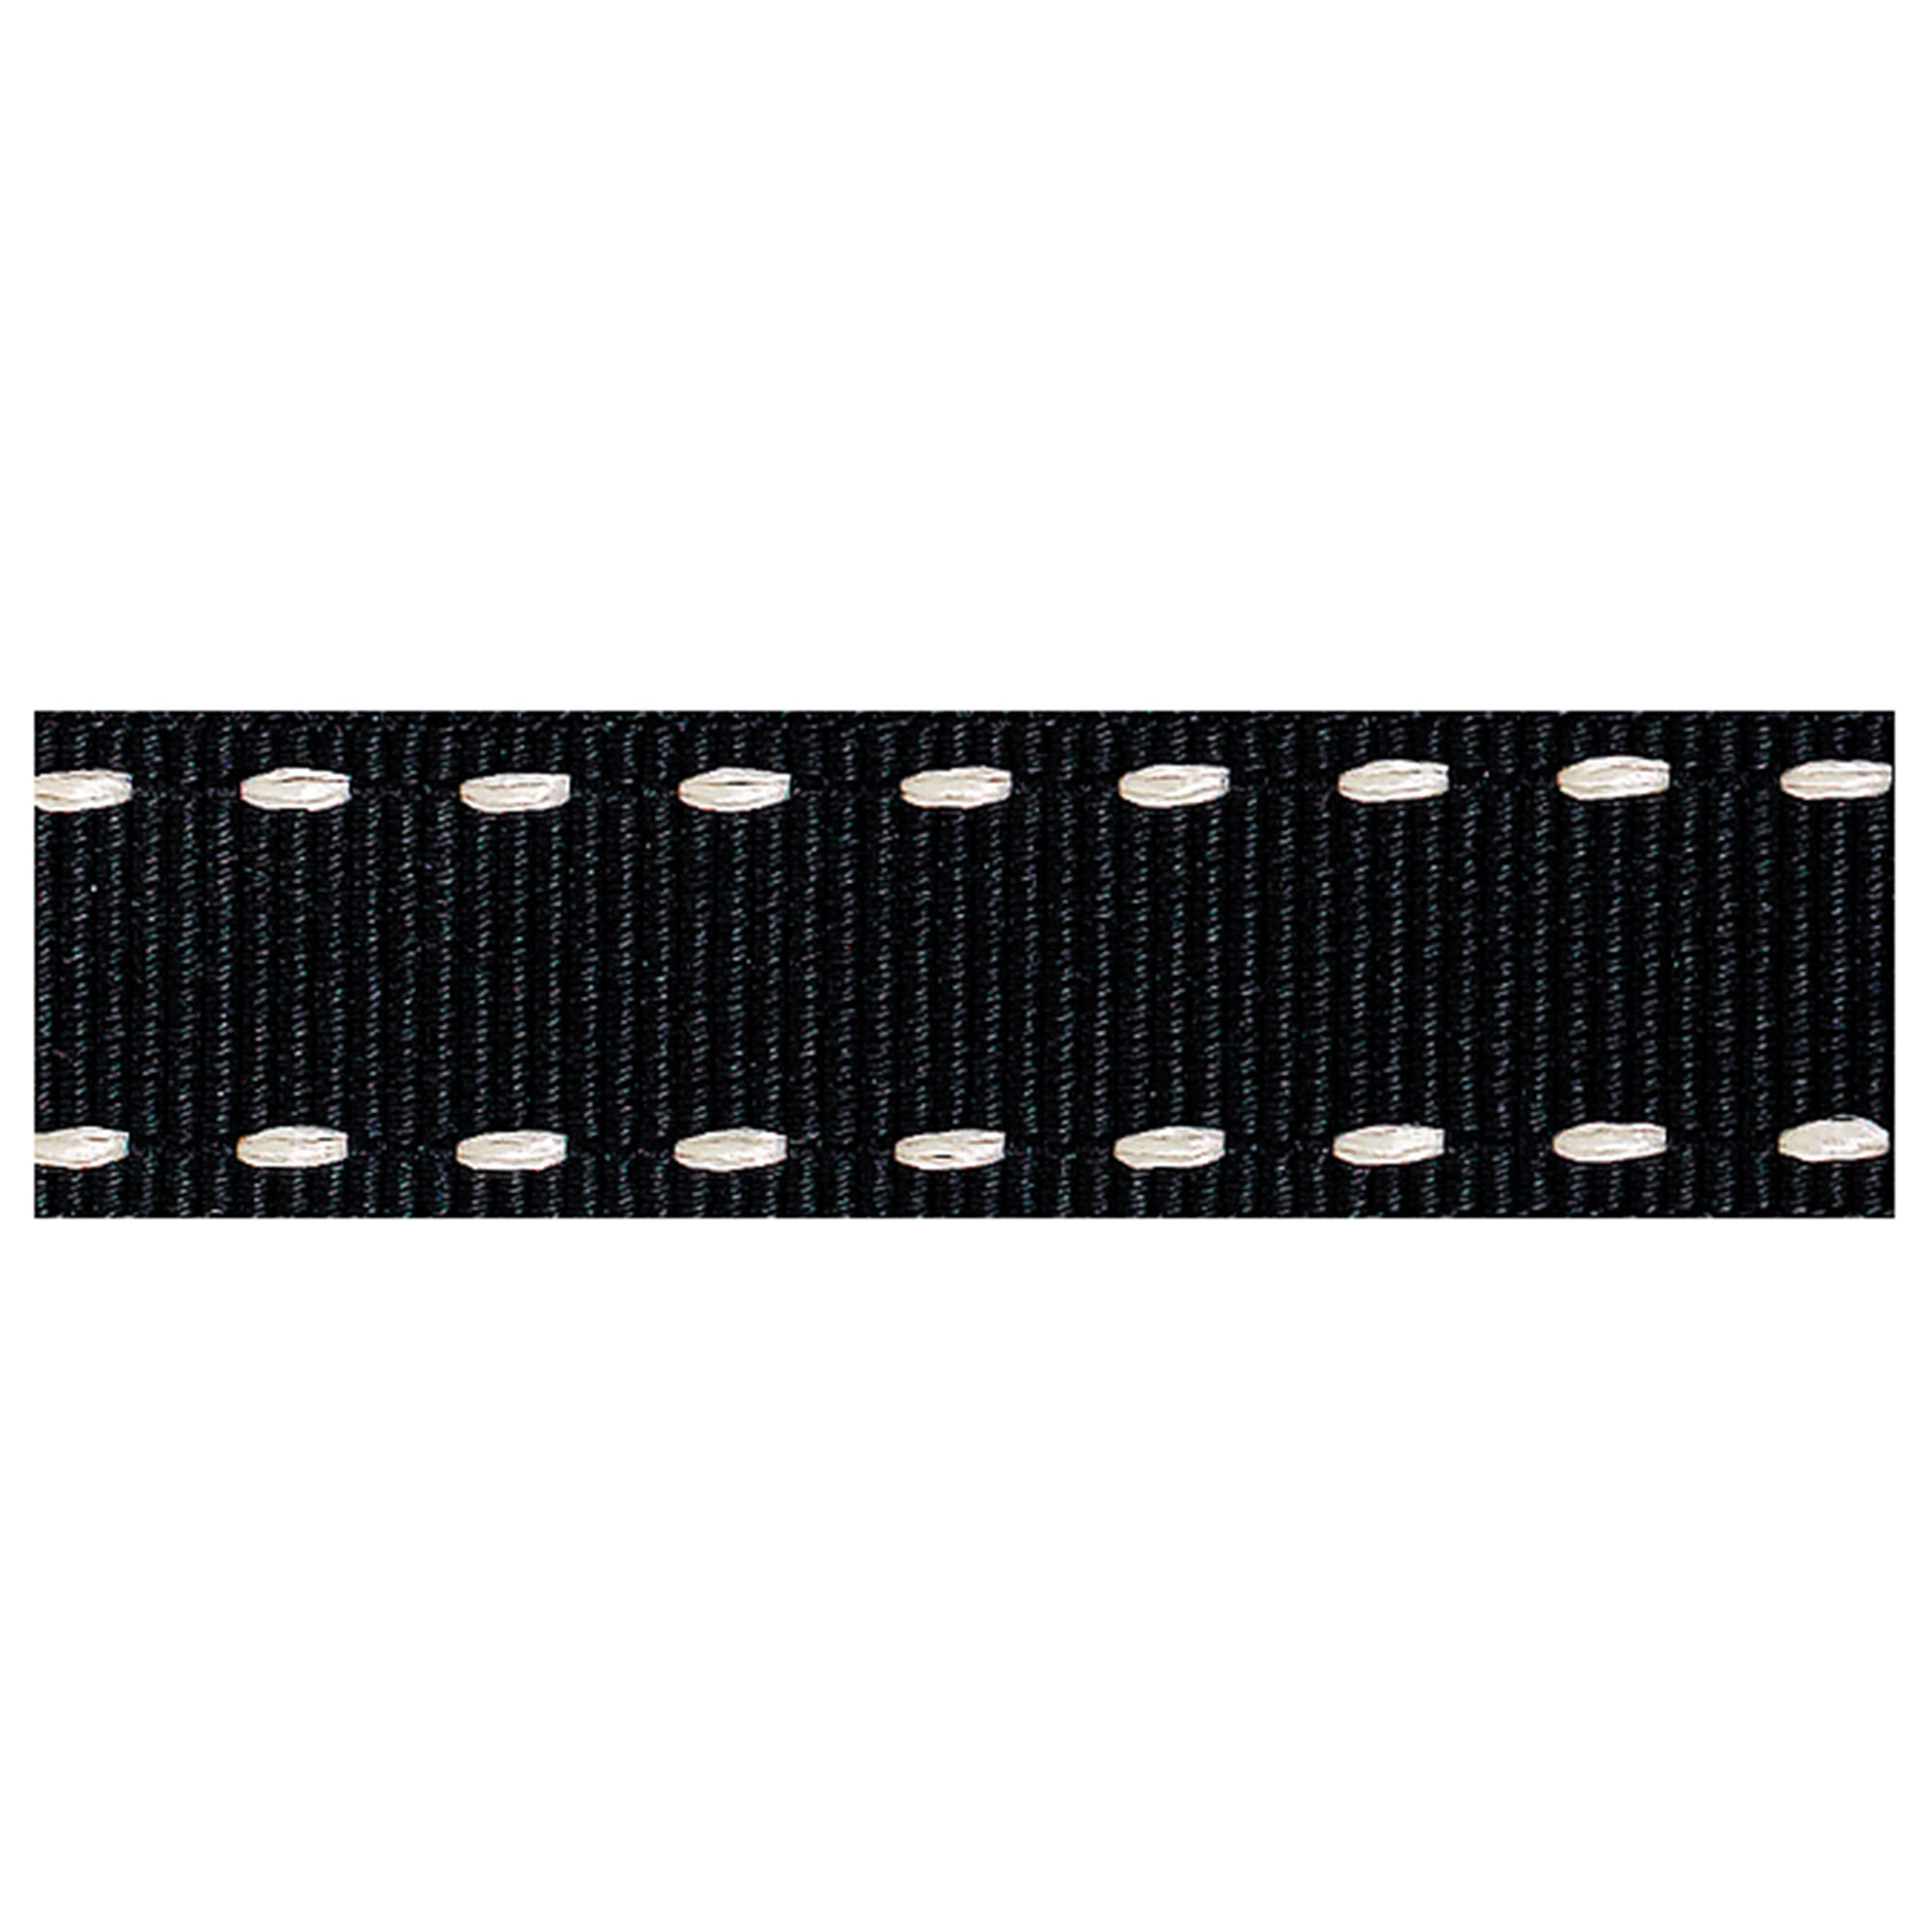 Black Stitched Grosgrain Ribbon